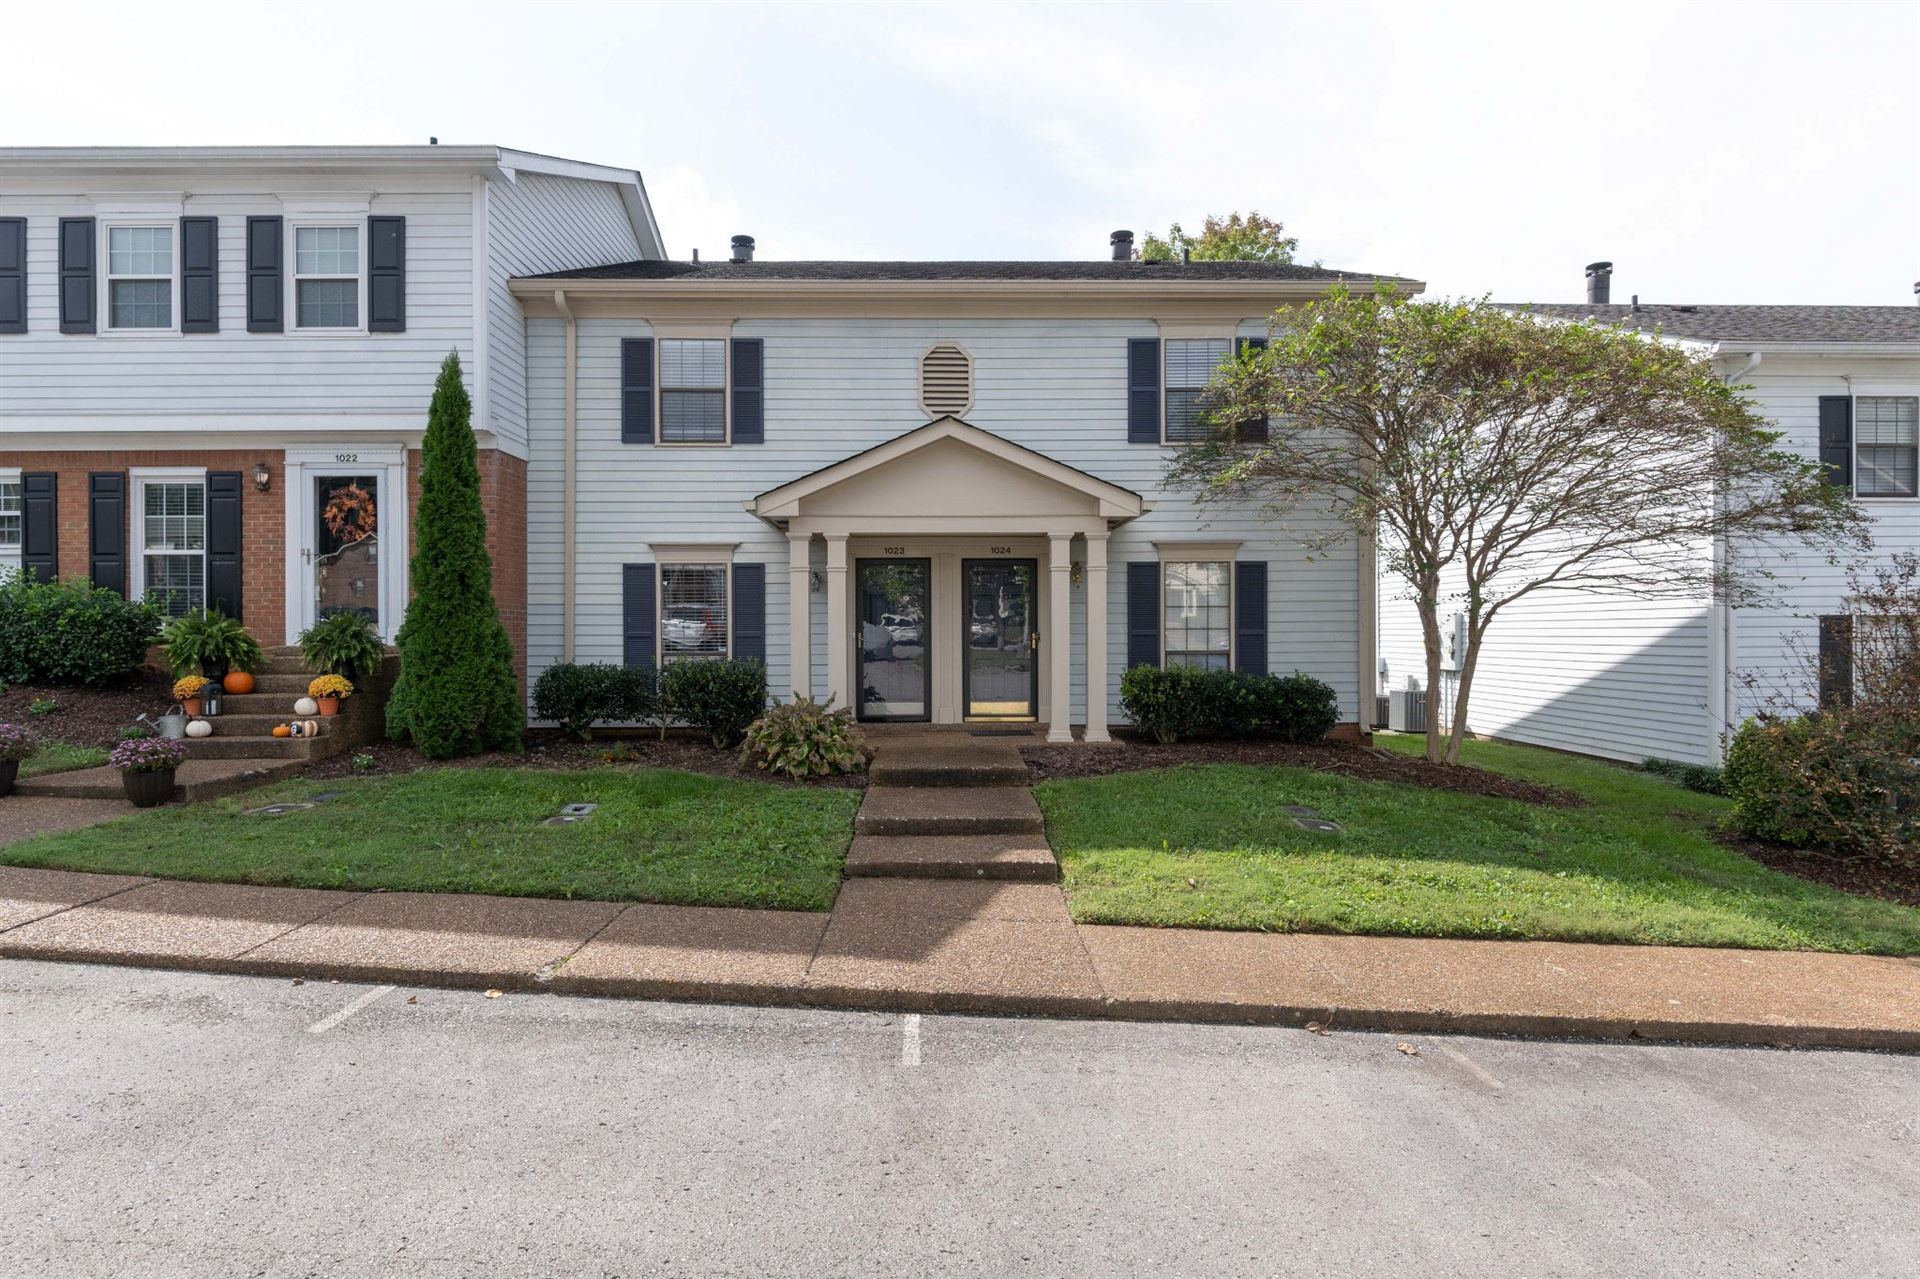 1023 Brentwood Pt, Brentwood, TN 37027 - MLS#: 2298829